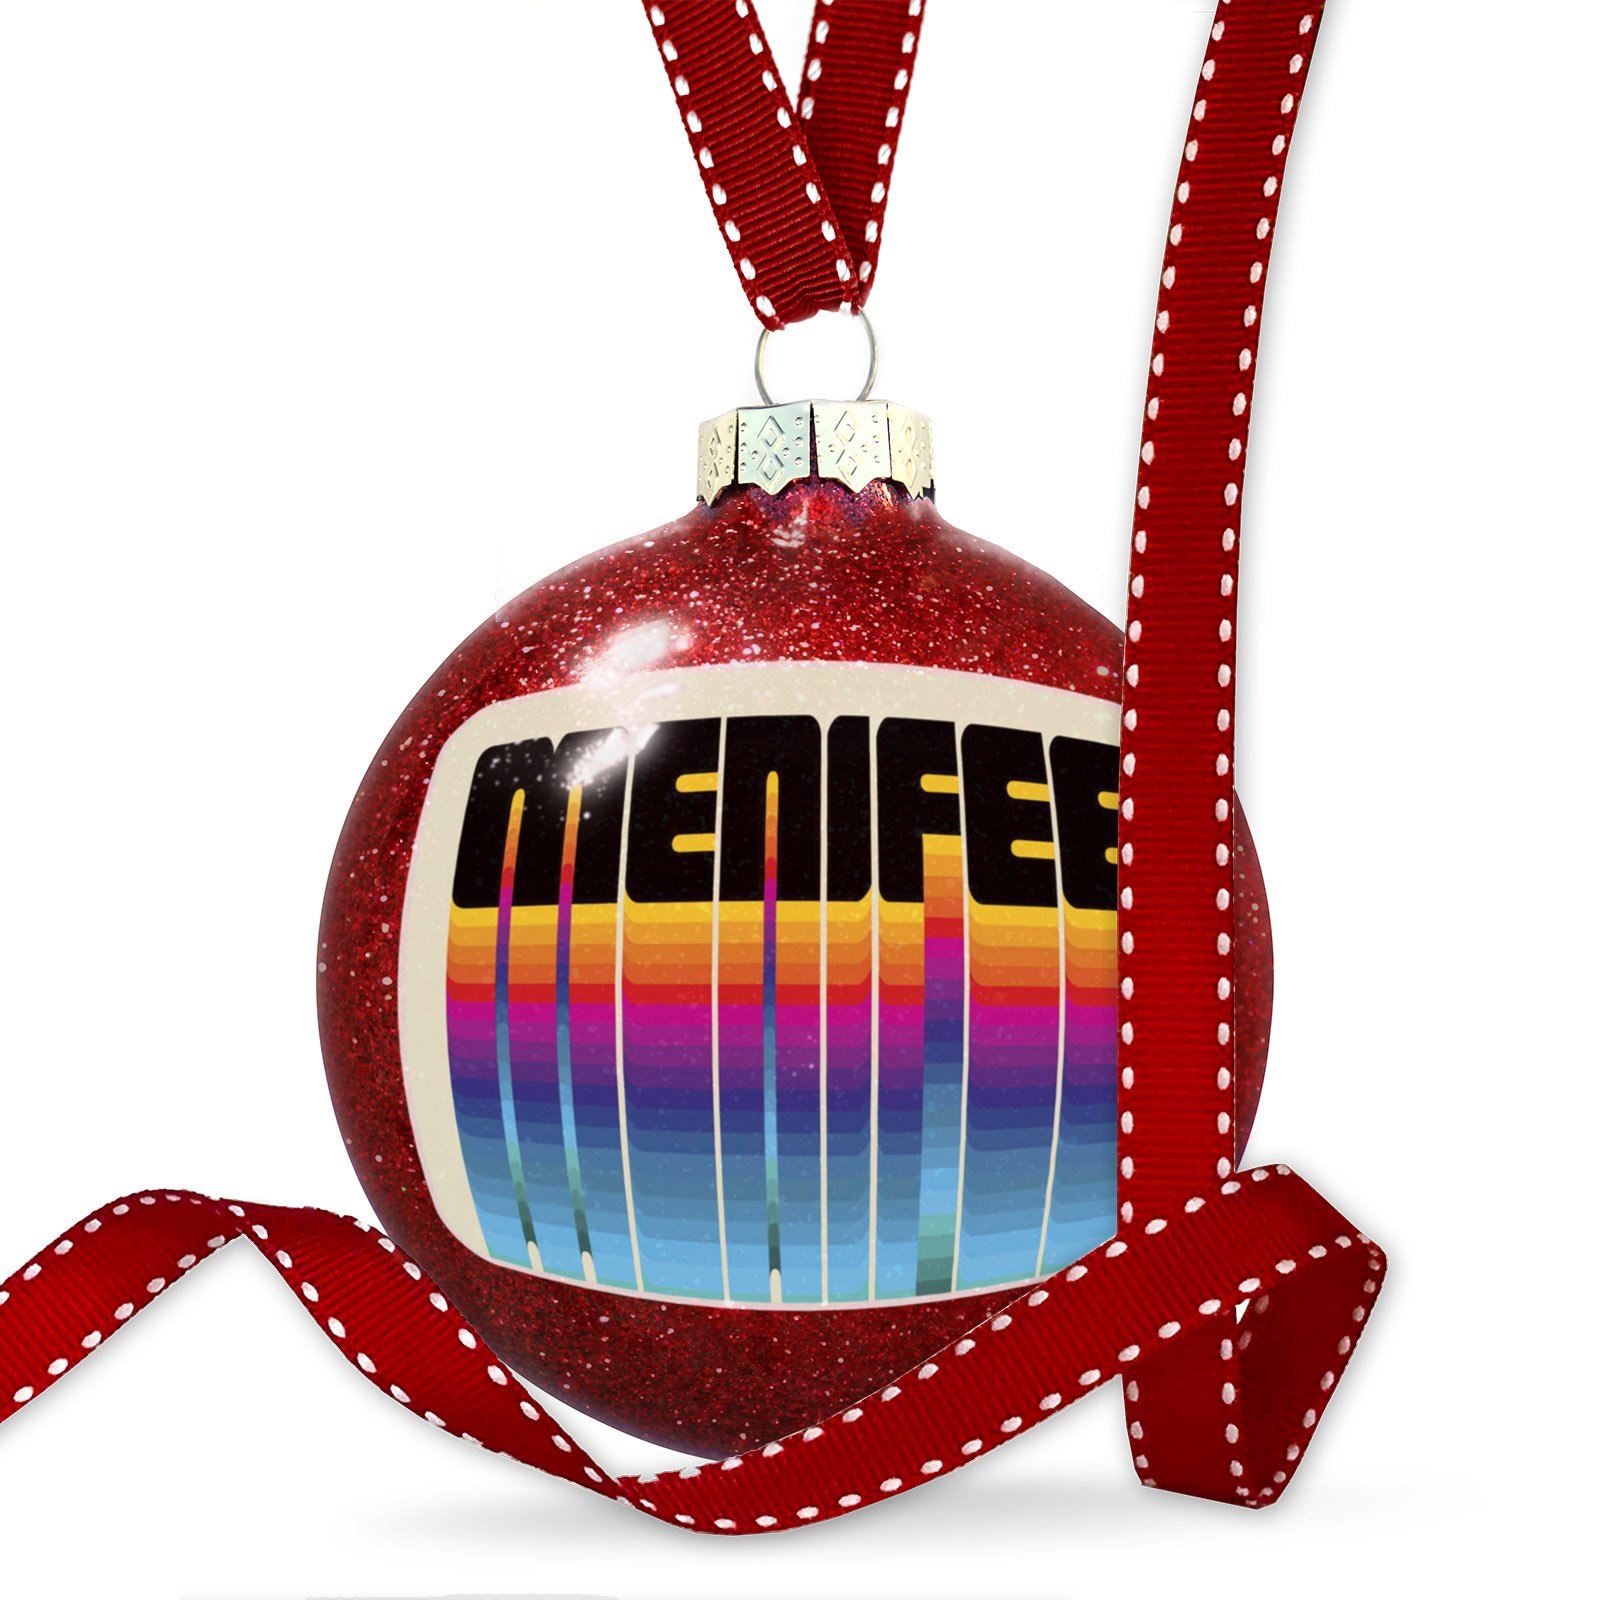 Christmas Decoration Retro Cites States Countries Menifee Ornament